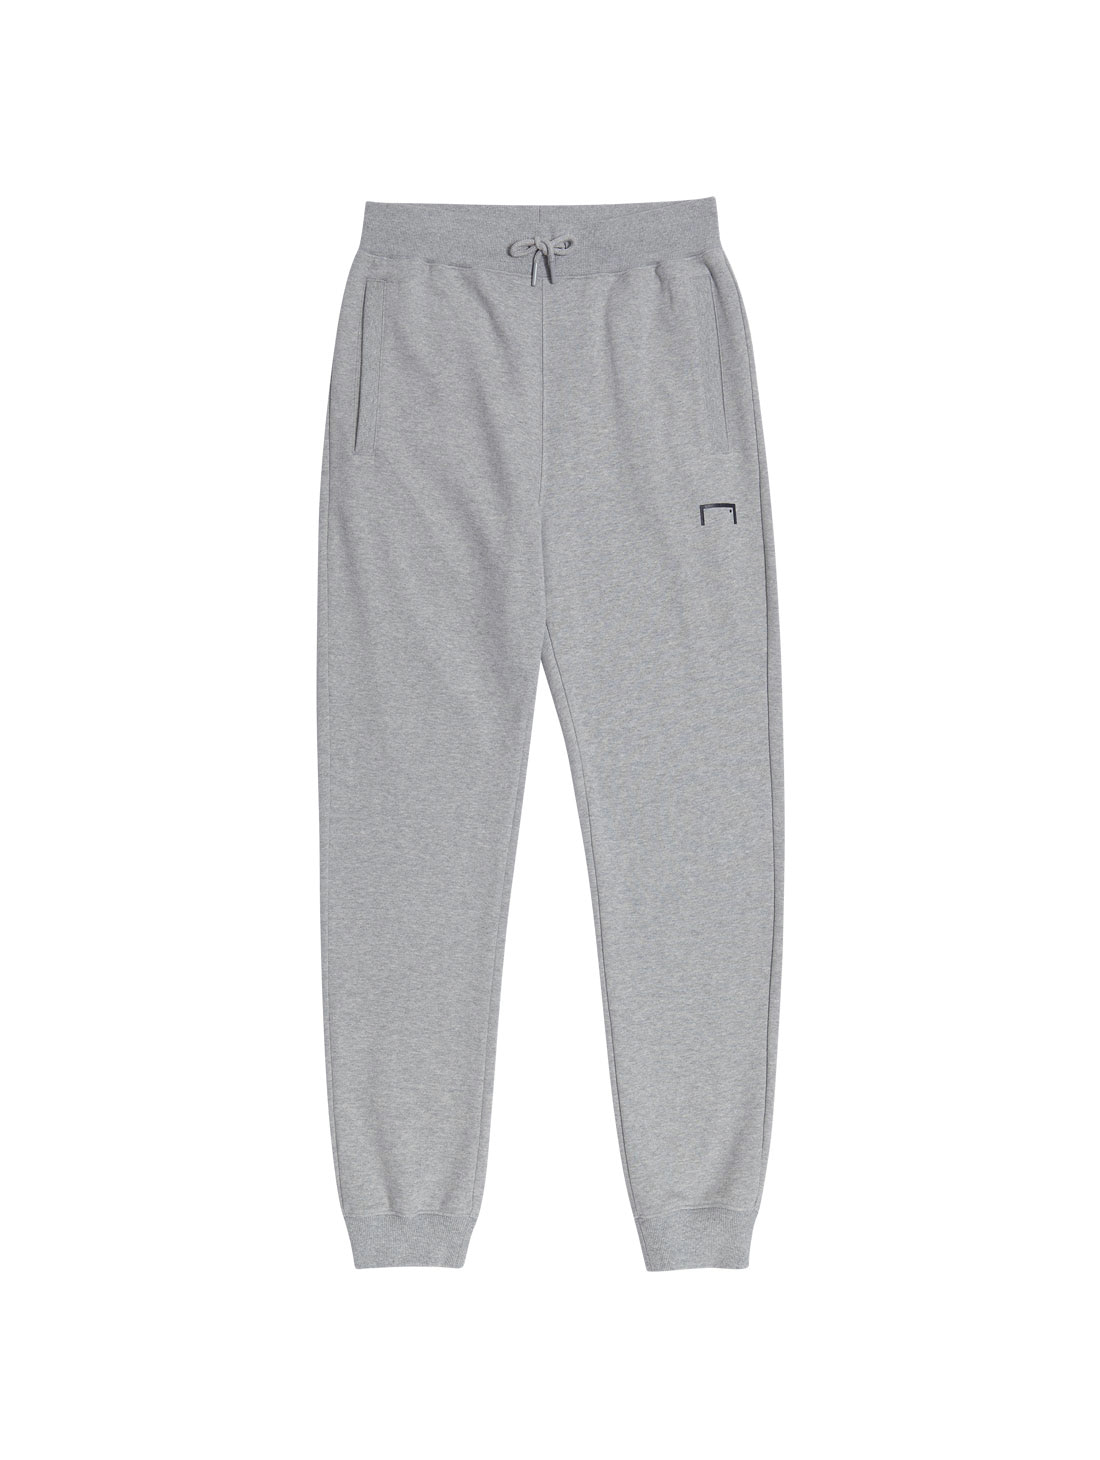 GOAL KNIT JOGGER PANTS - GRAY